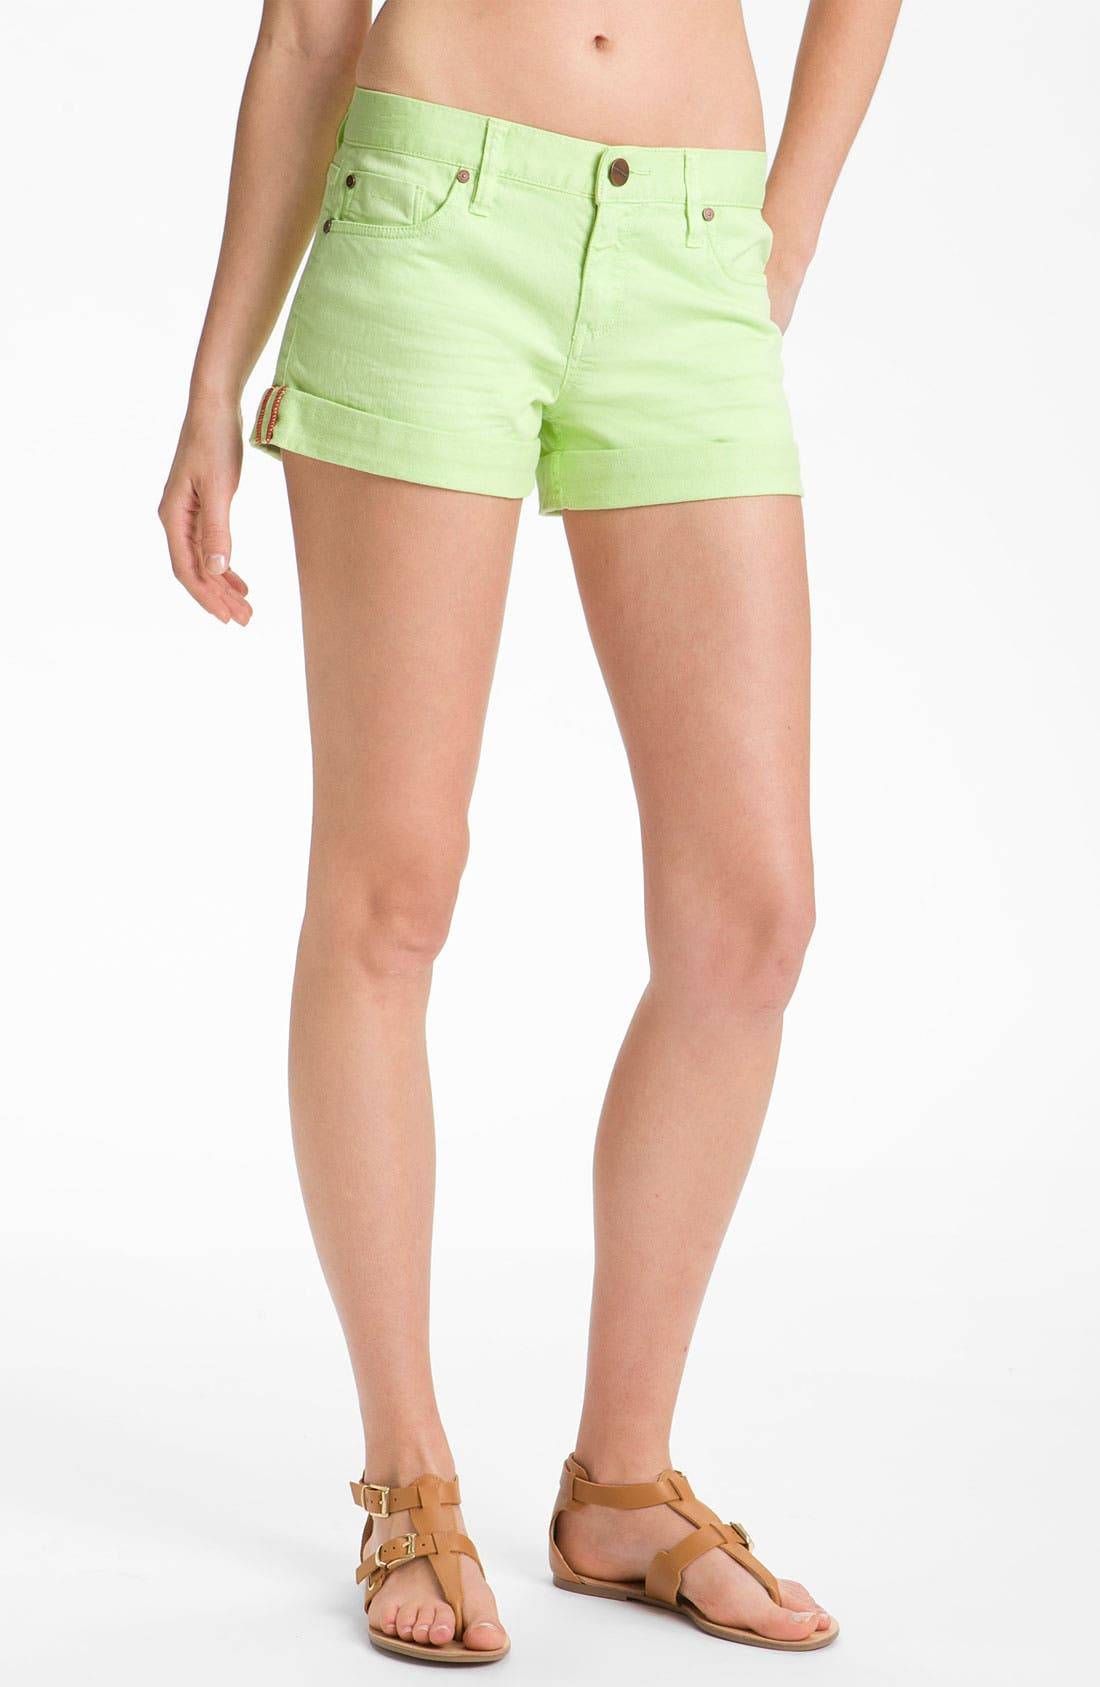 Alternate Image 1 Selected - Sanctuary 'Perfect Fit' Cuff Denim Shorts (Highlighter)